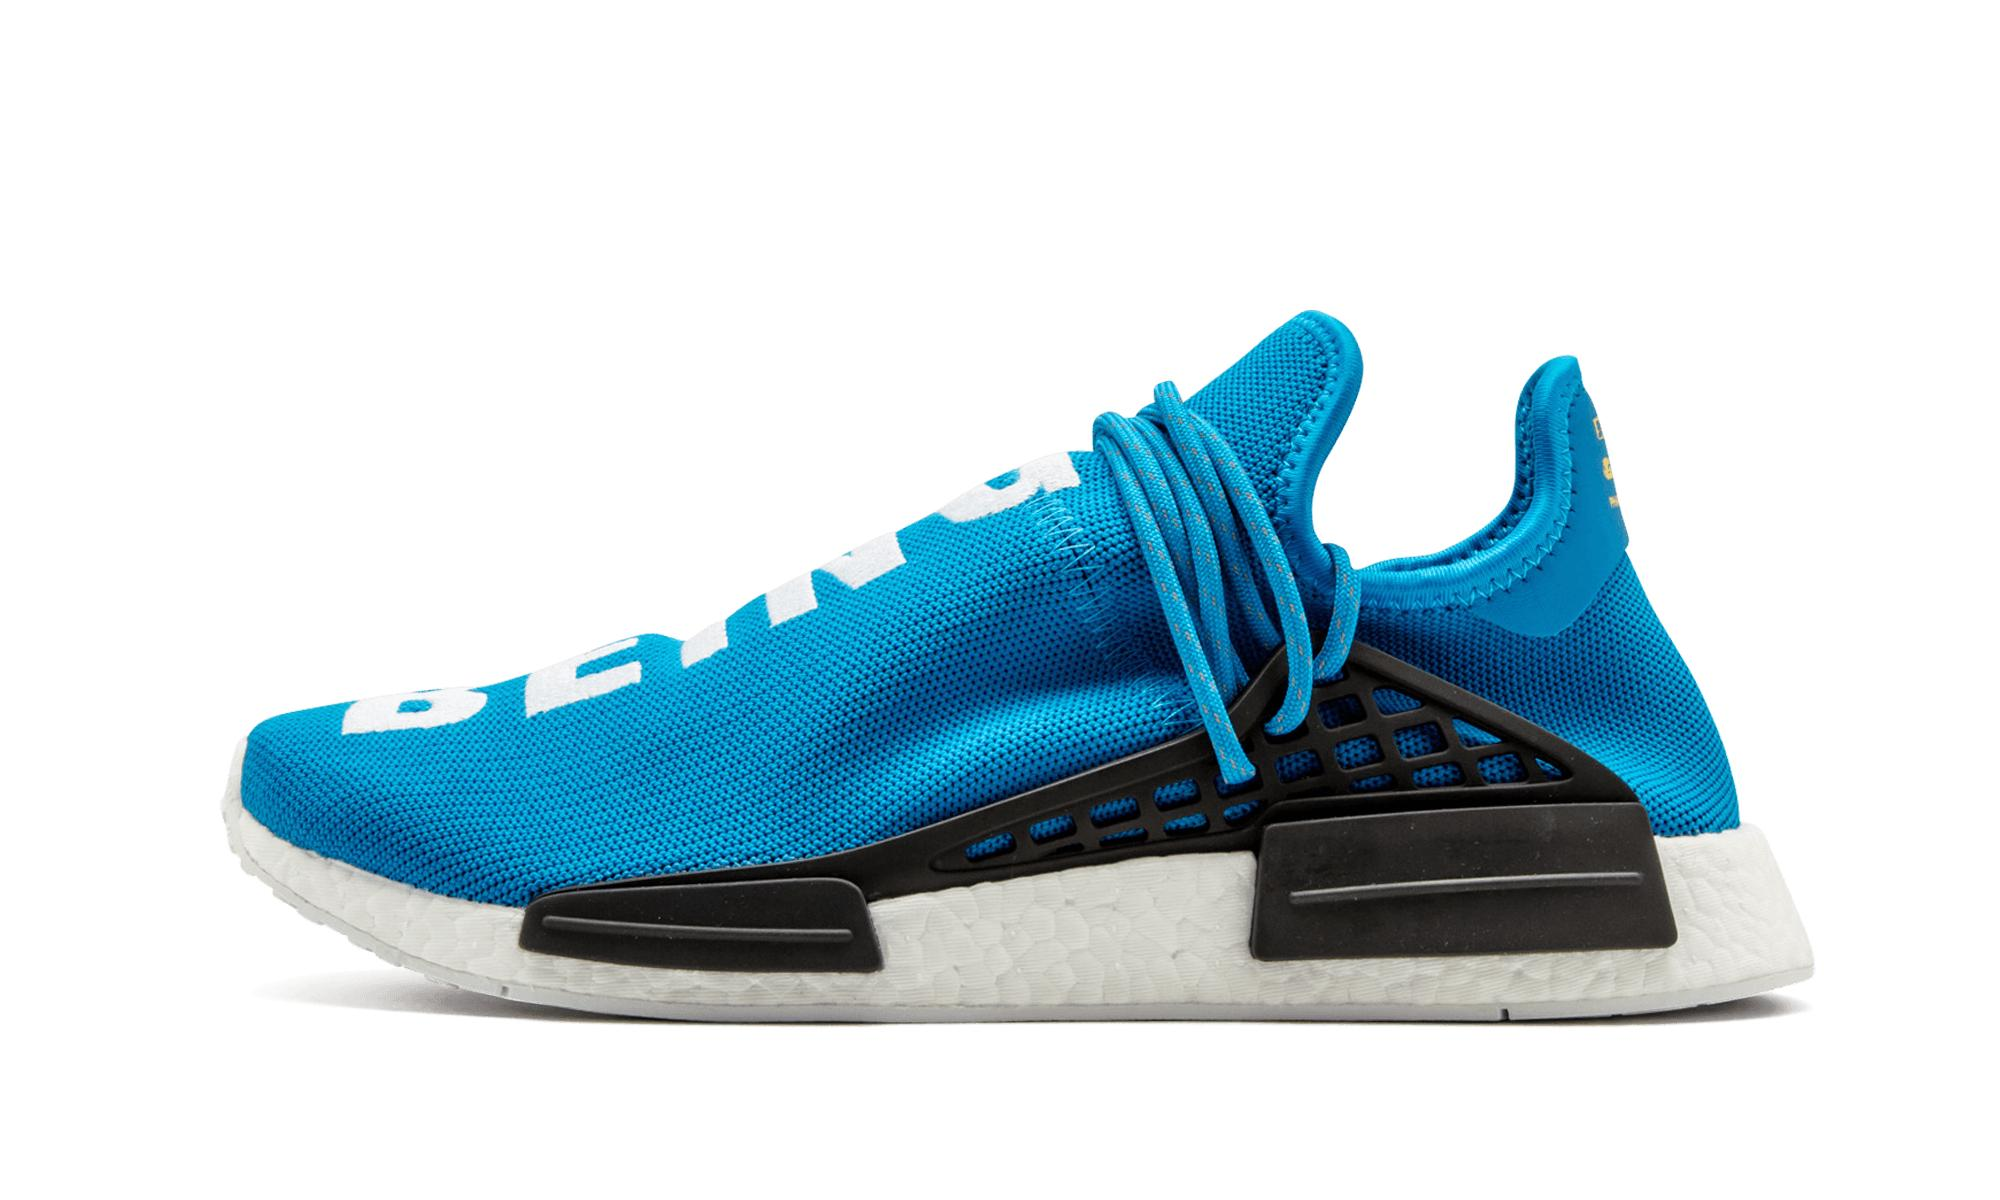 6c5c3b02cfa4f adidas Pw Human Race Nmd Blue core Blue in Blue for Men - Lyst